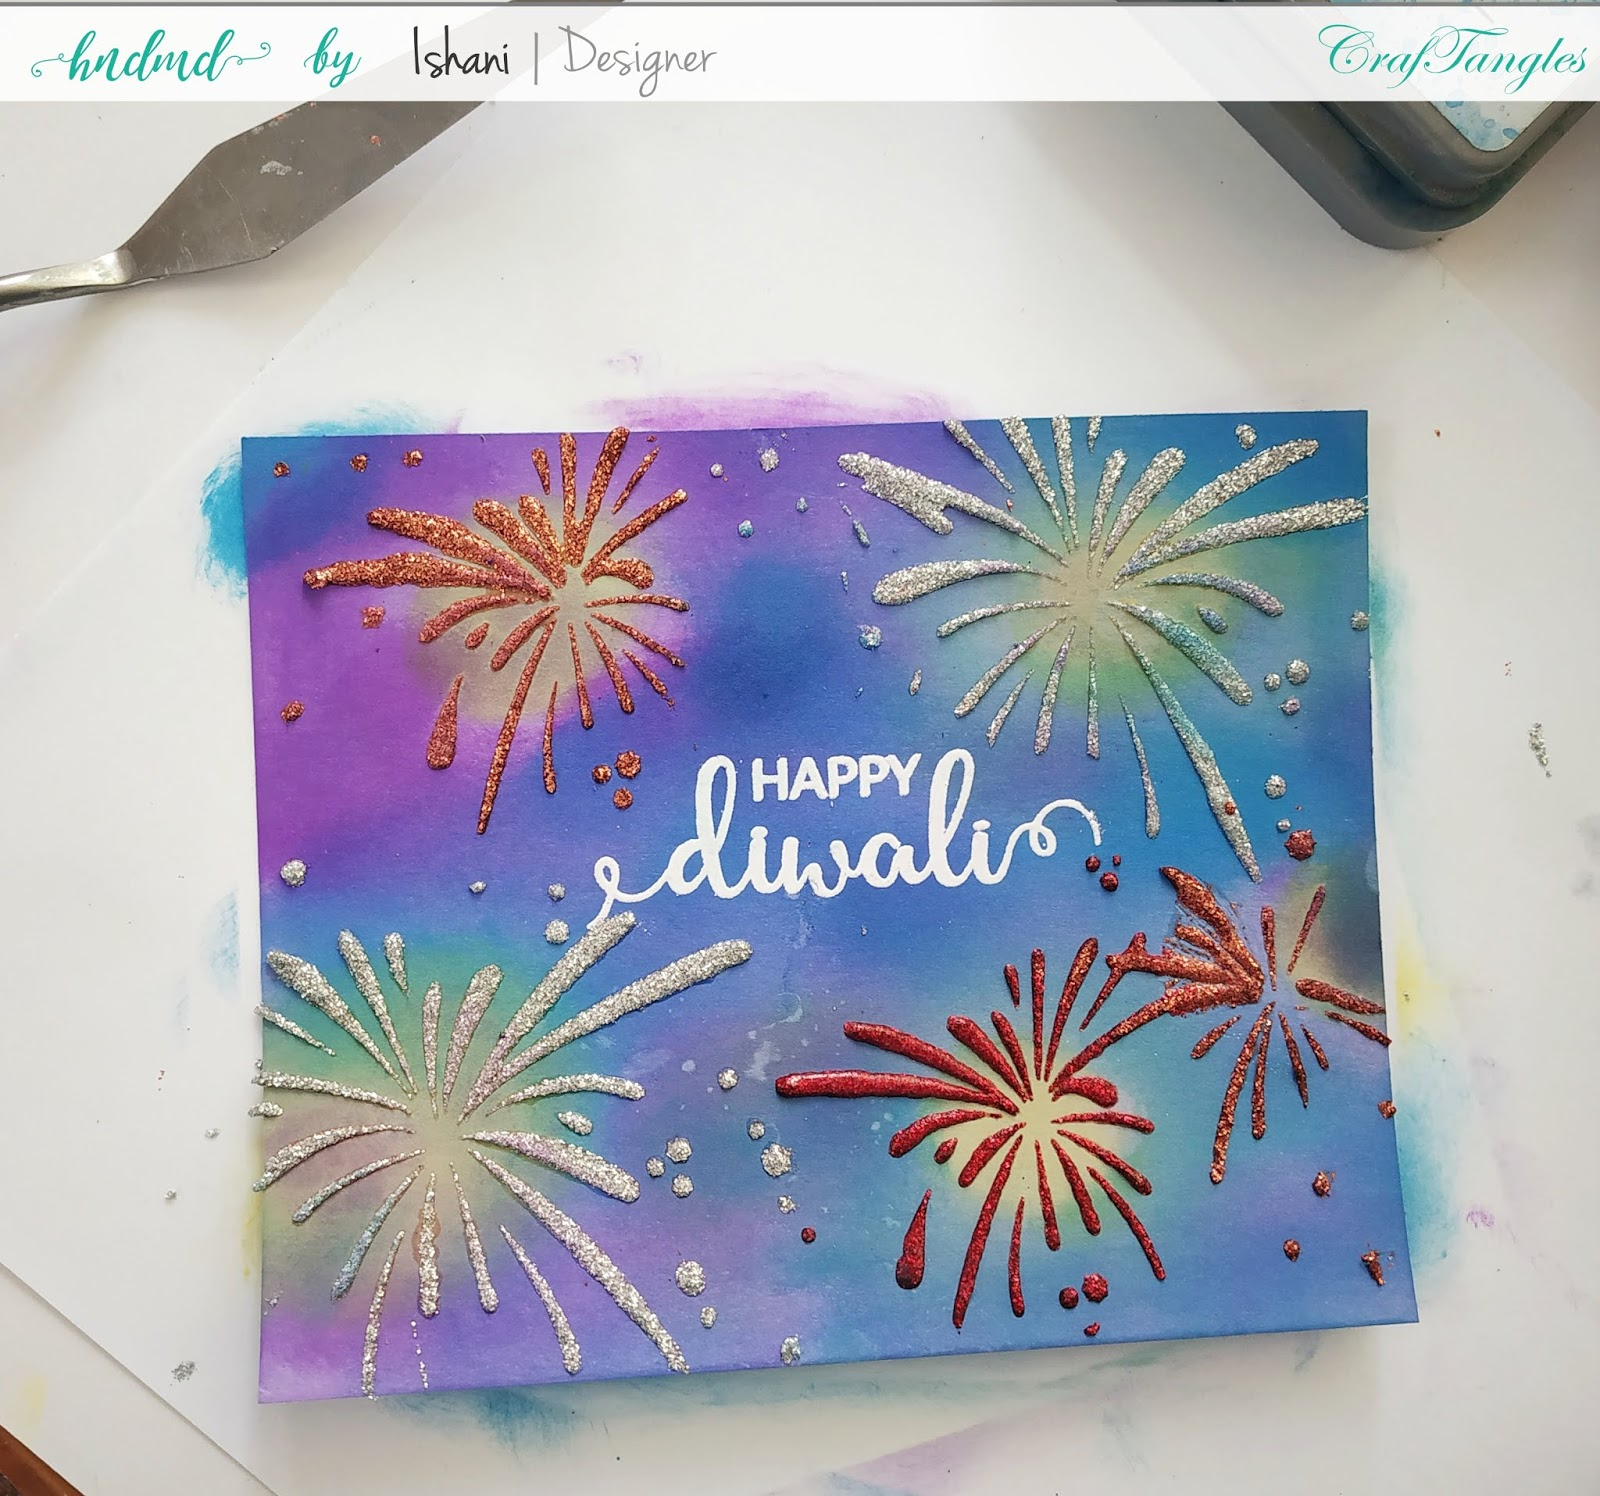 Cardmaking with stencils by Ishani 10